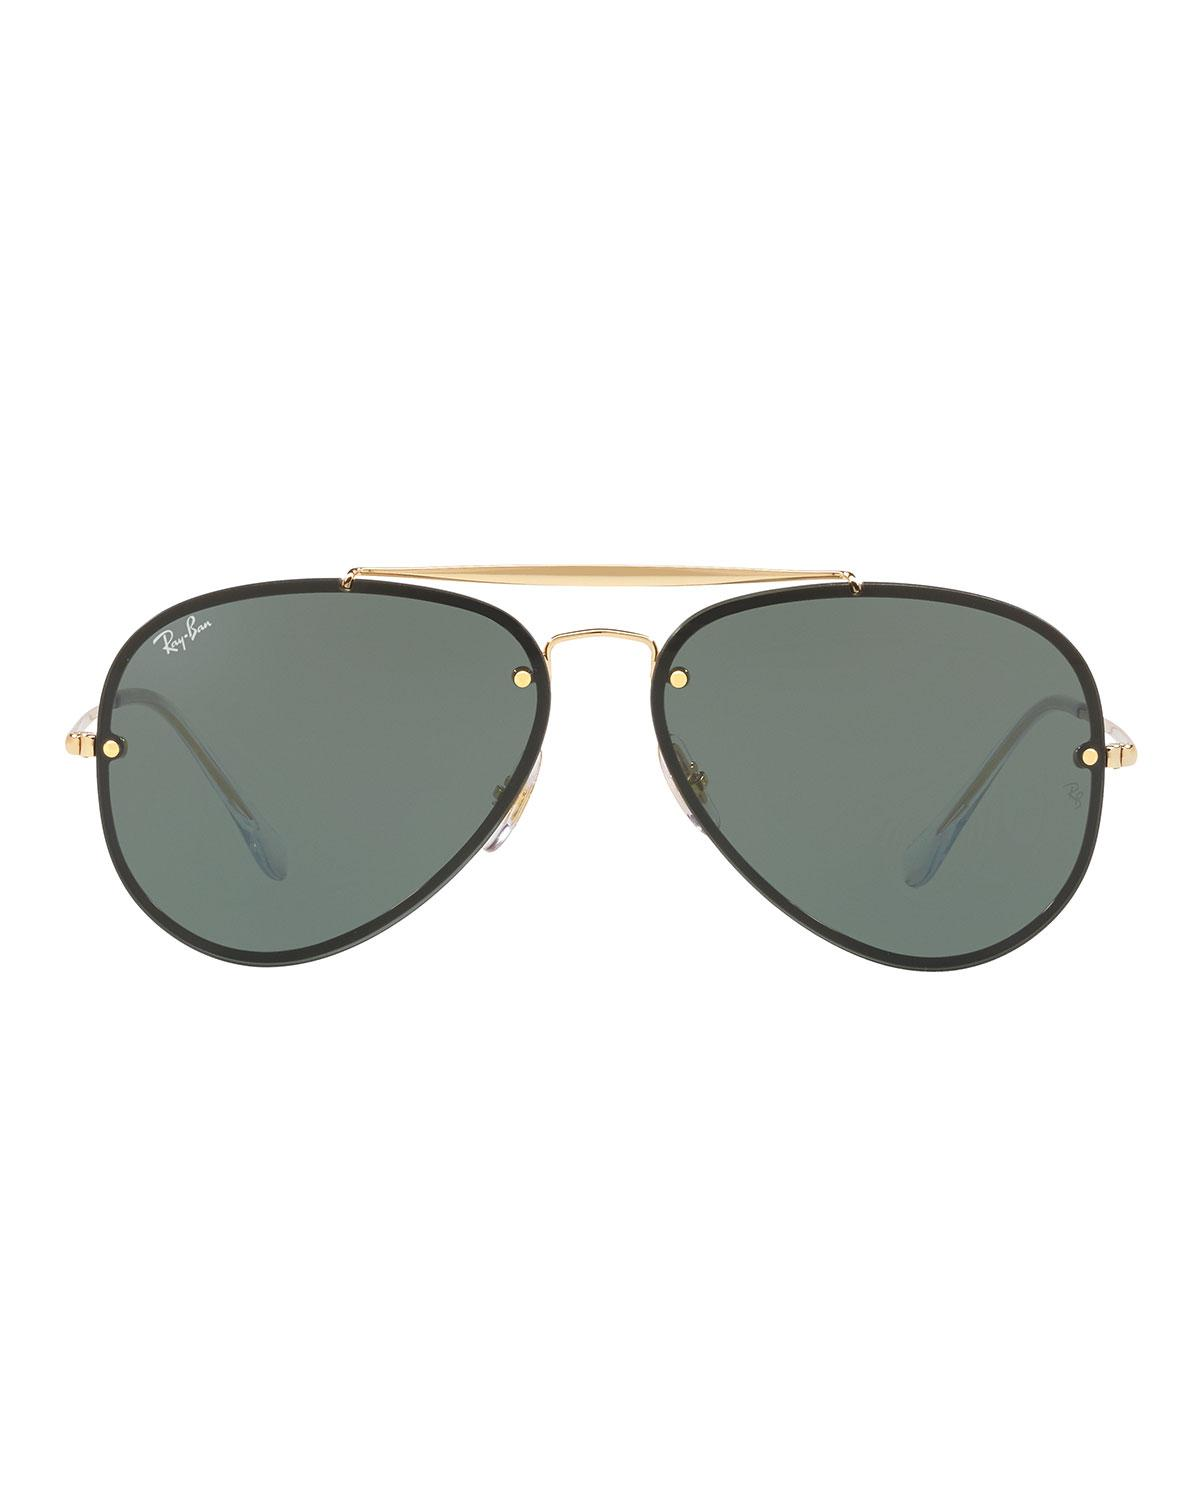 a9d4e3ee814 Ray-Ban Rb3584 Aviator Sunglasses in Metallic for Men - Save  2.643171806167402% - Lyst